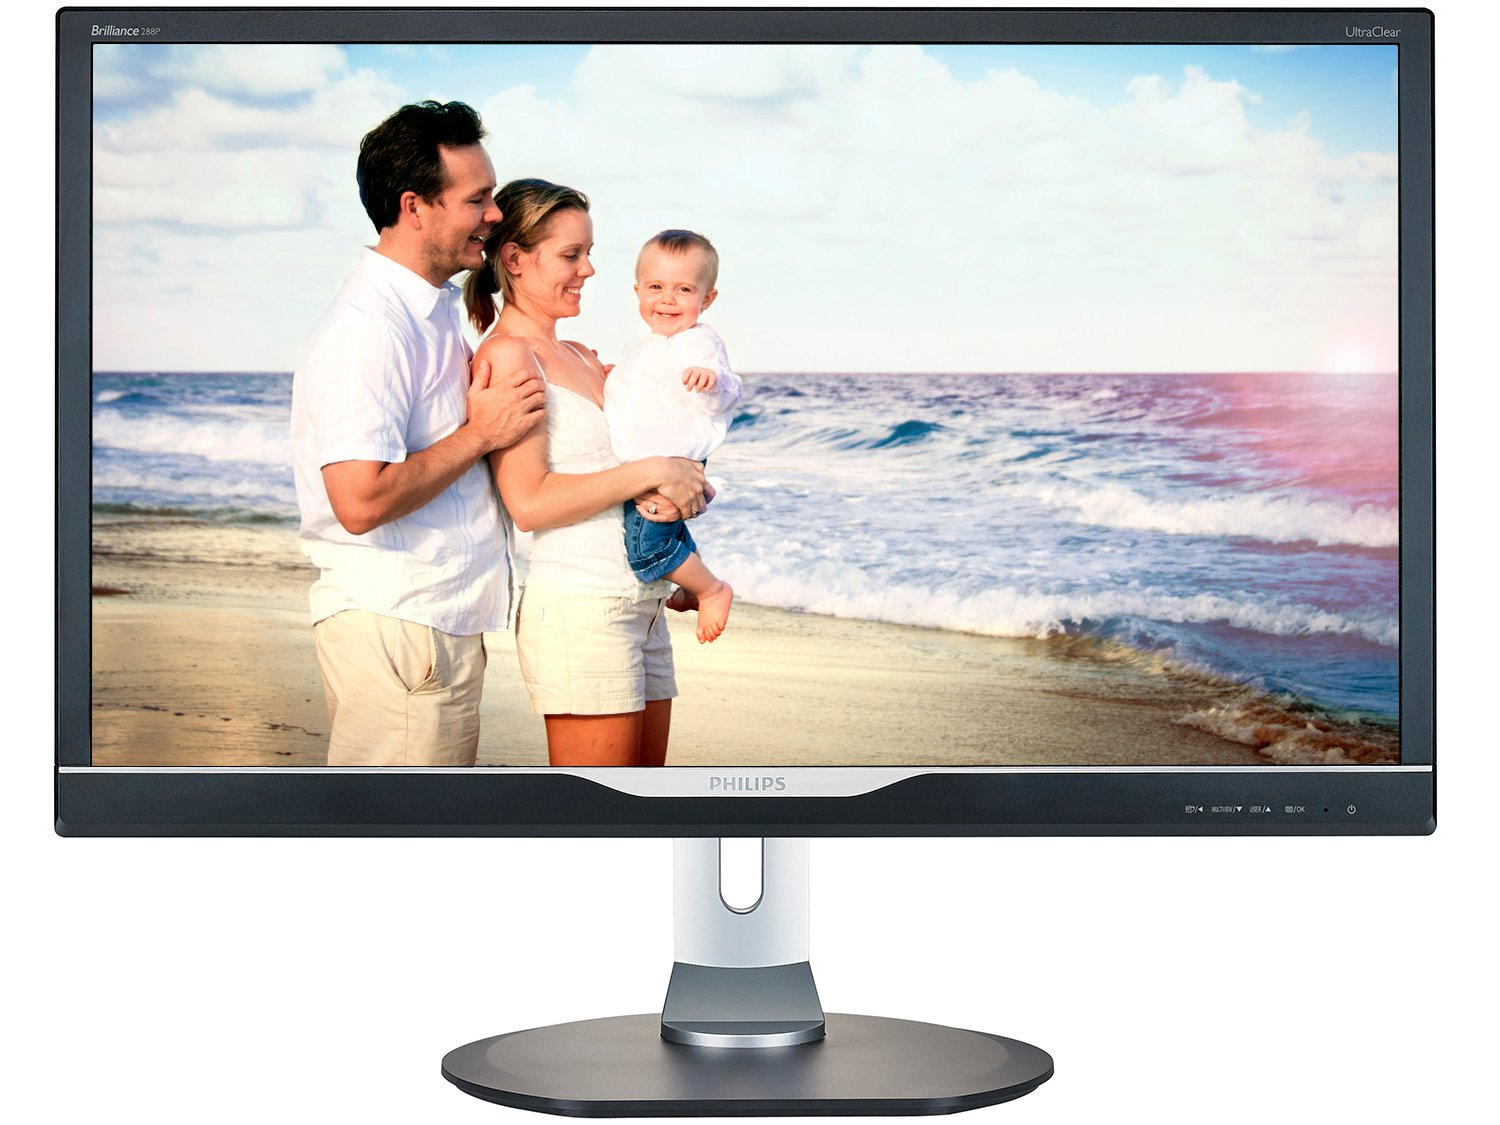 Foto 3 - Monitor para PC Ultra HD Philips LCD Widescreen - 28 288P6LJEB/57